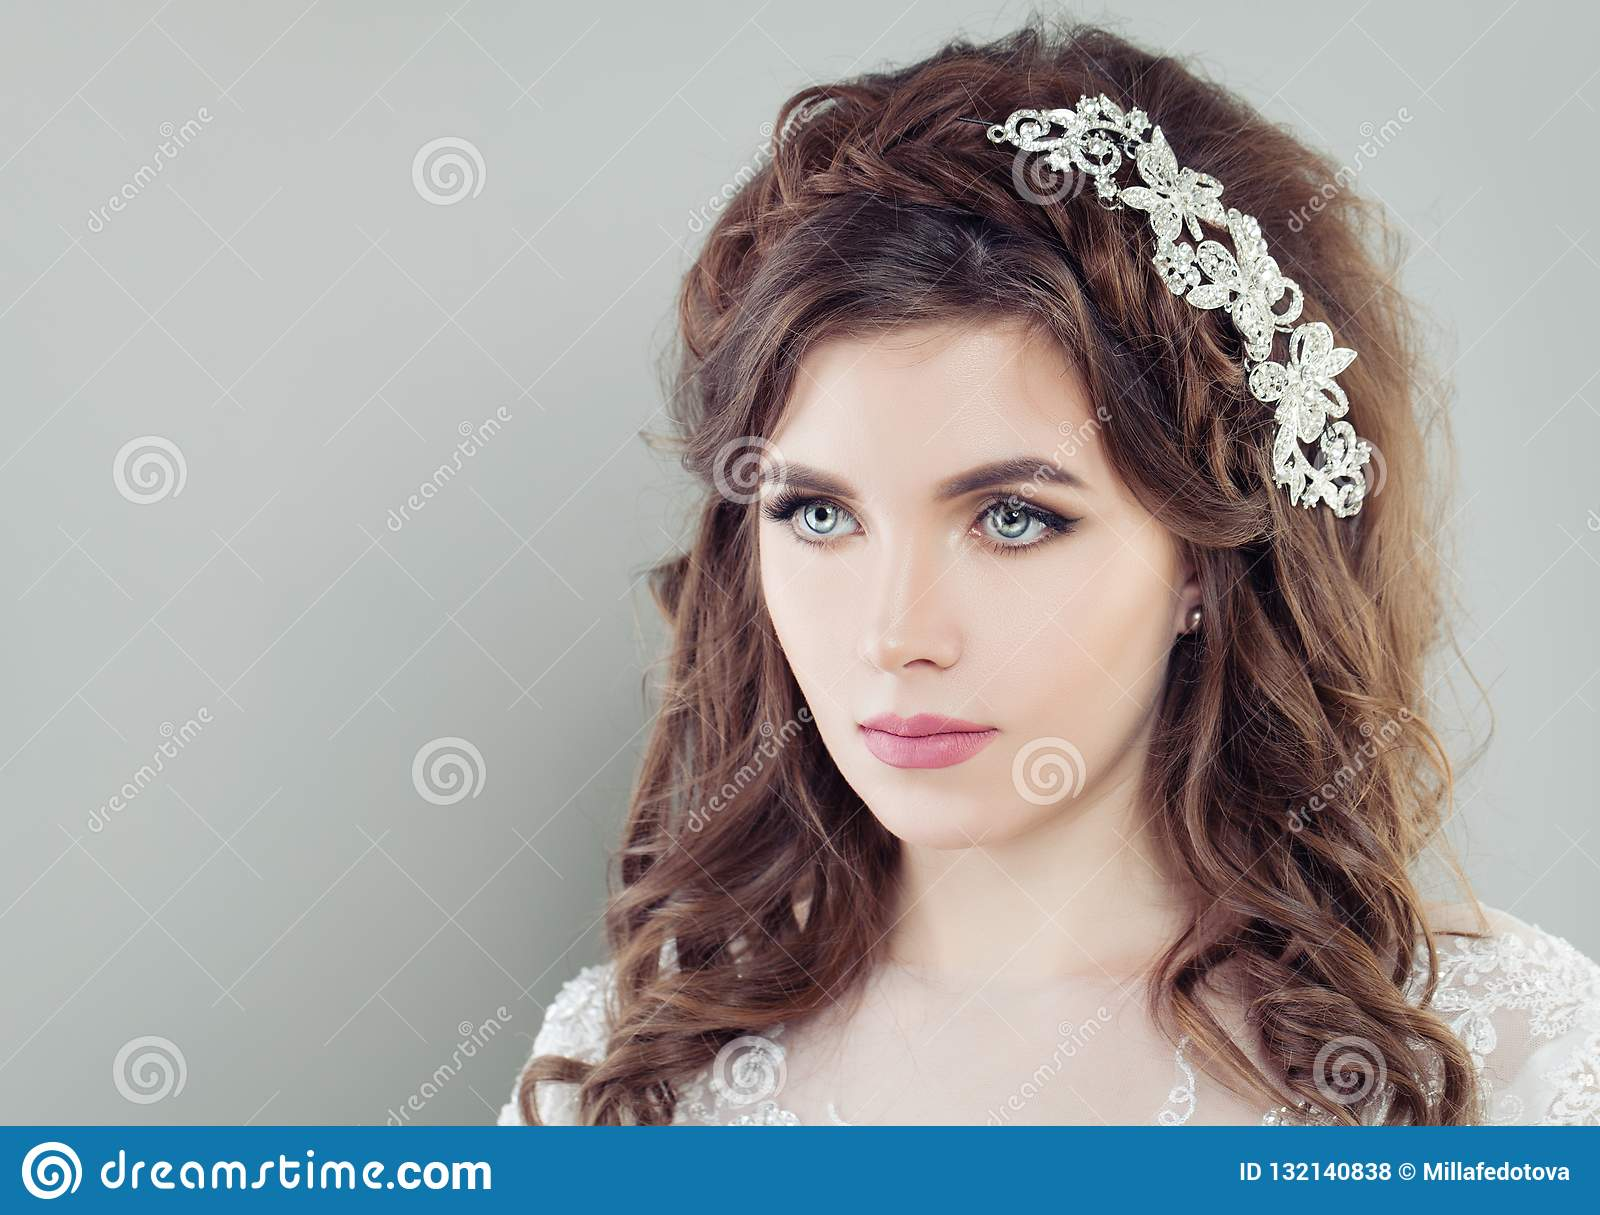 Attractive Bride With Makeup And Bridal Hair Stock Photo